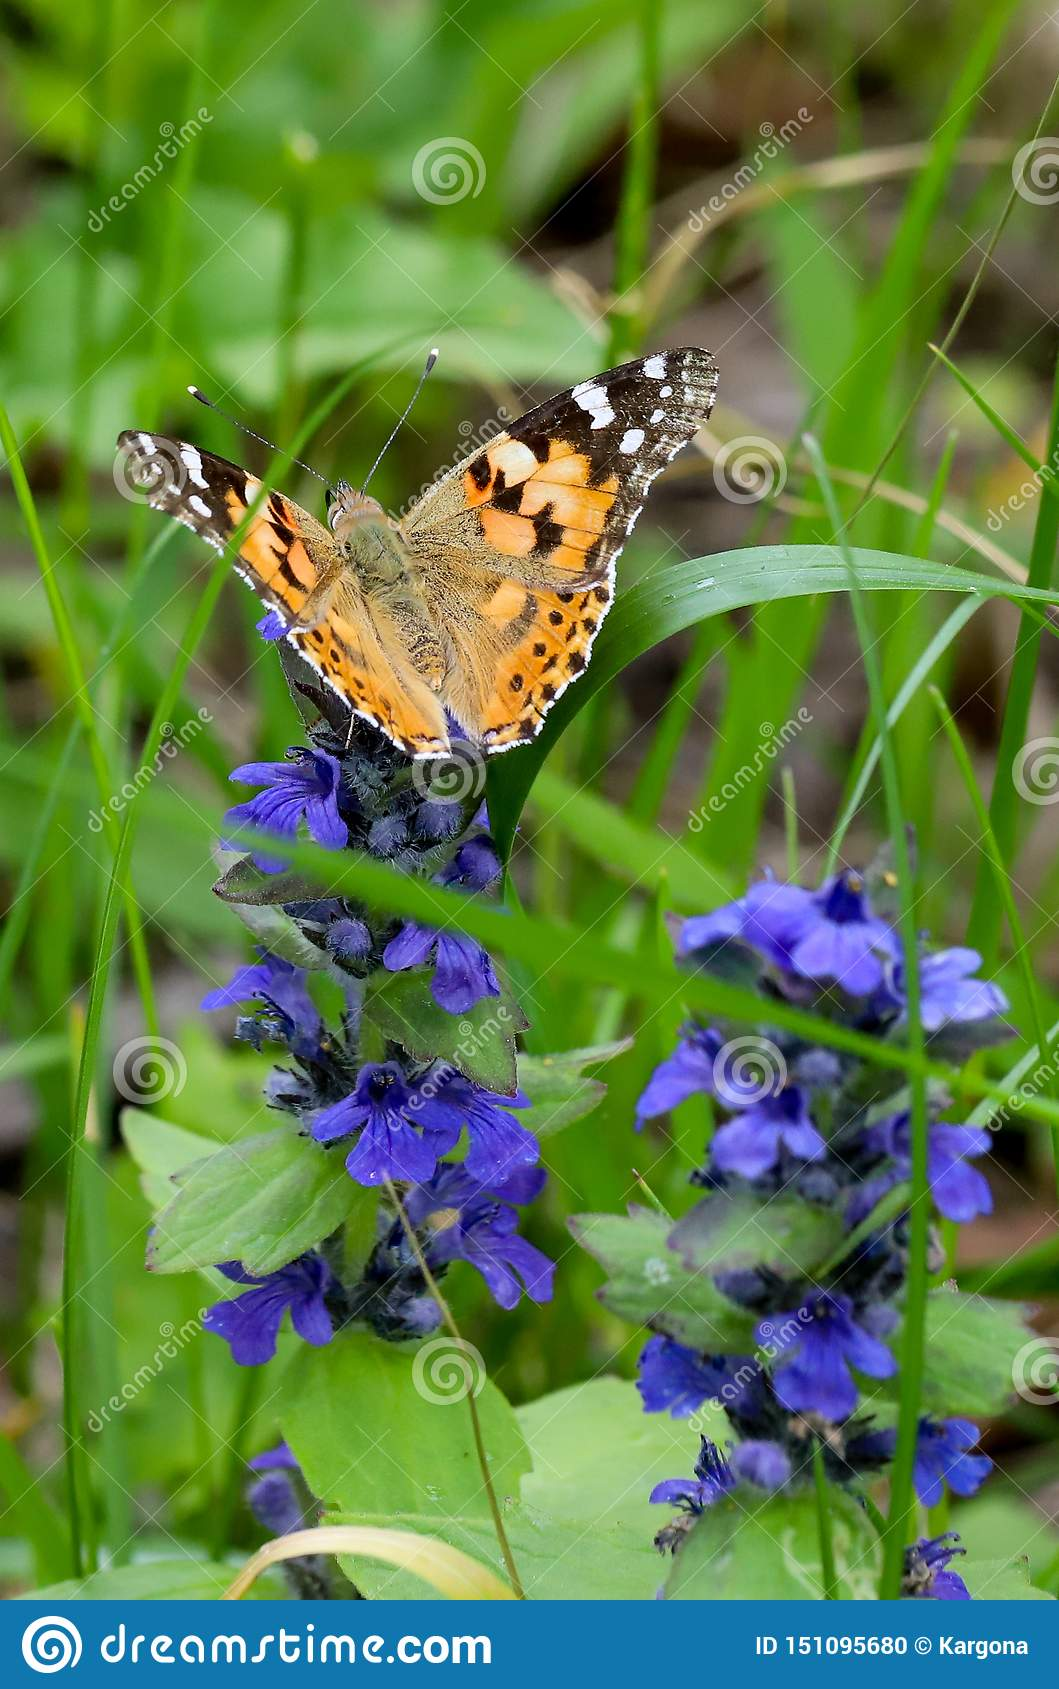 The Painted Lady Butterfly Vanessa Cardui Using Its